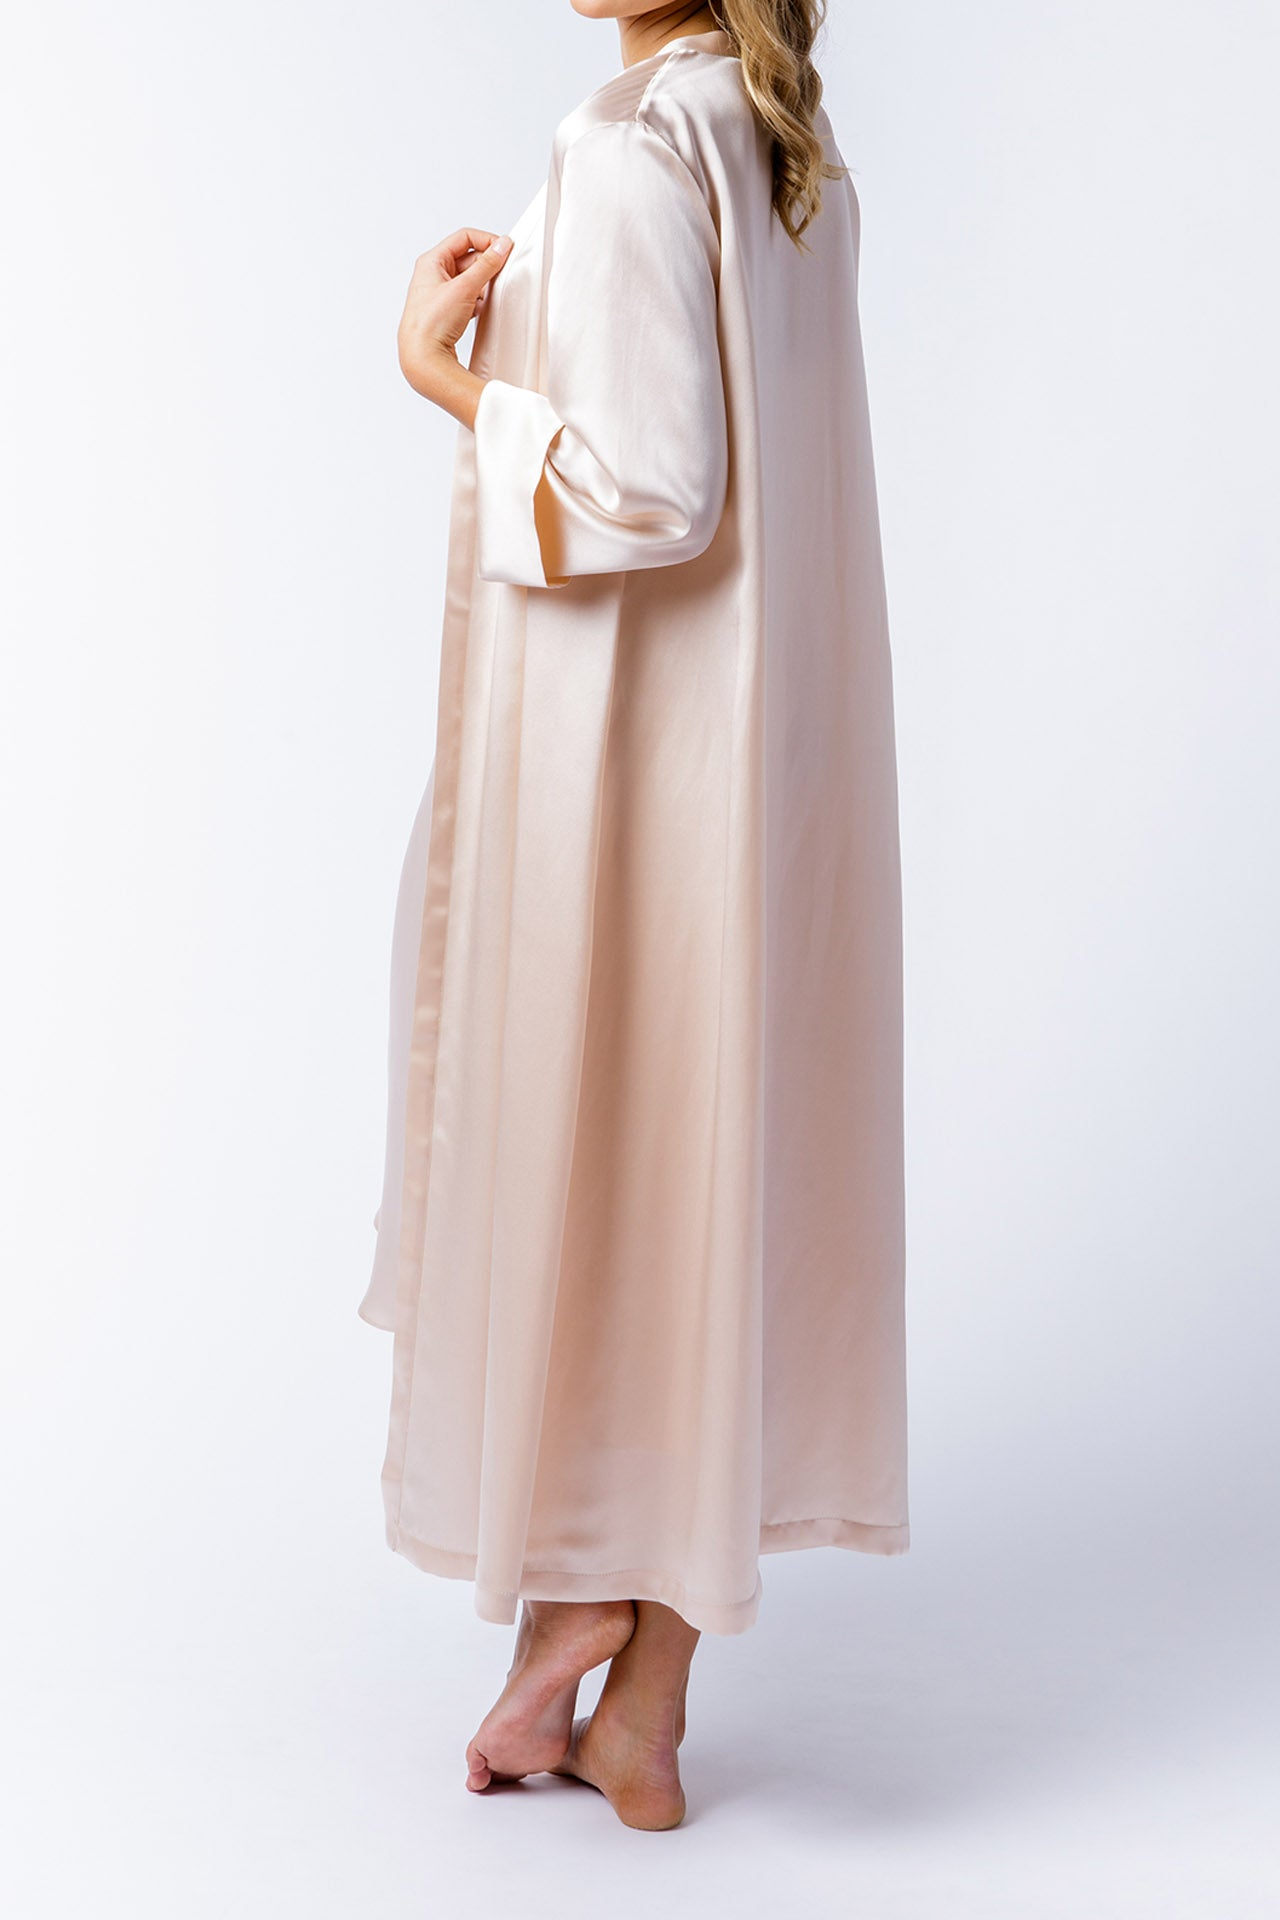 Alice Robe in blush, back